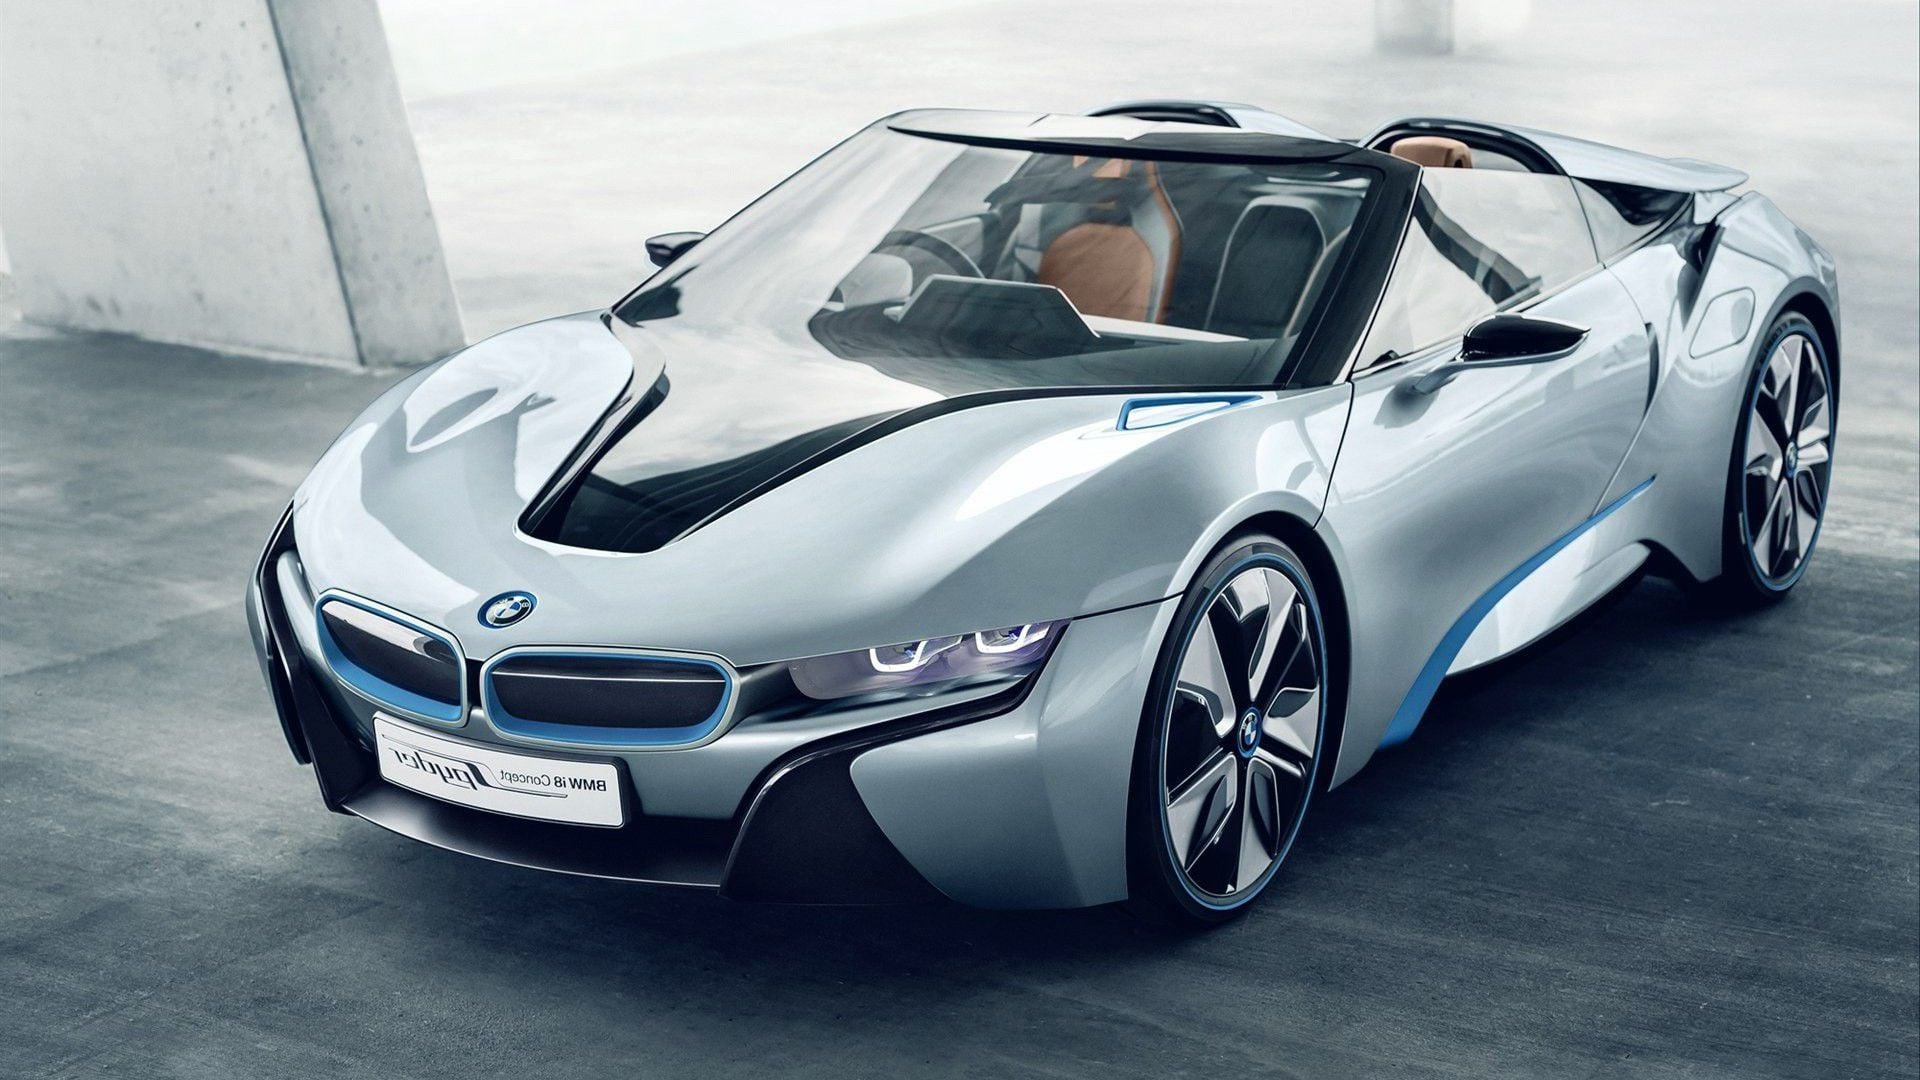 16 bmw i8 wallpapers hd high quality download. Black Bedroom Furniture Sets. Home Design Ideas